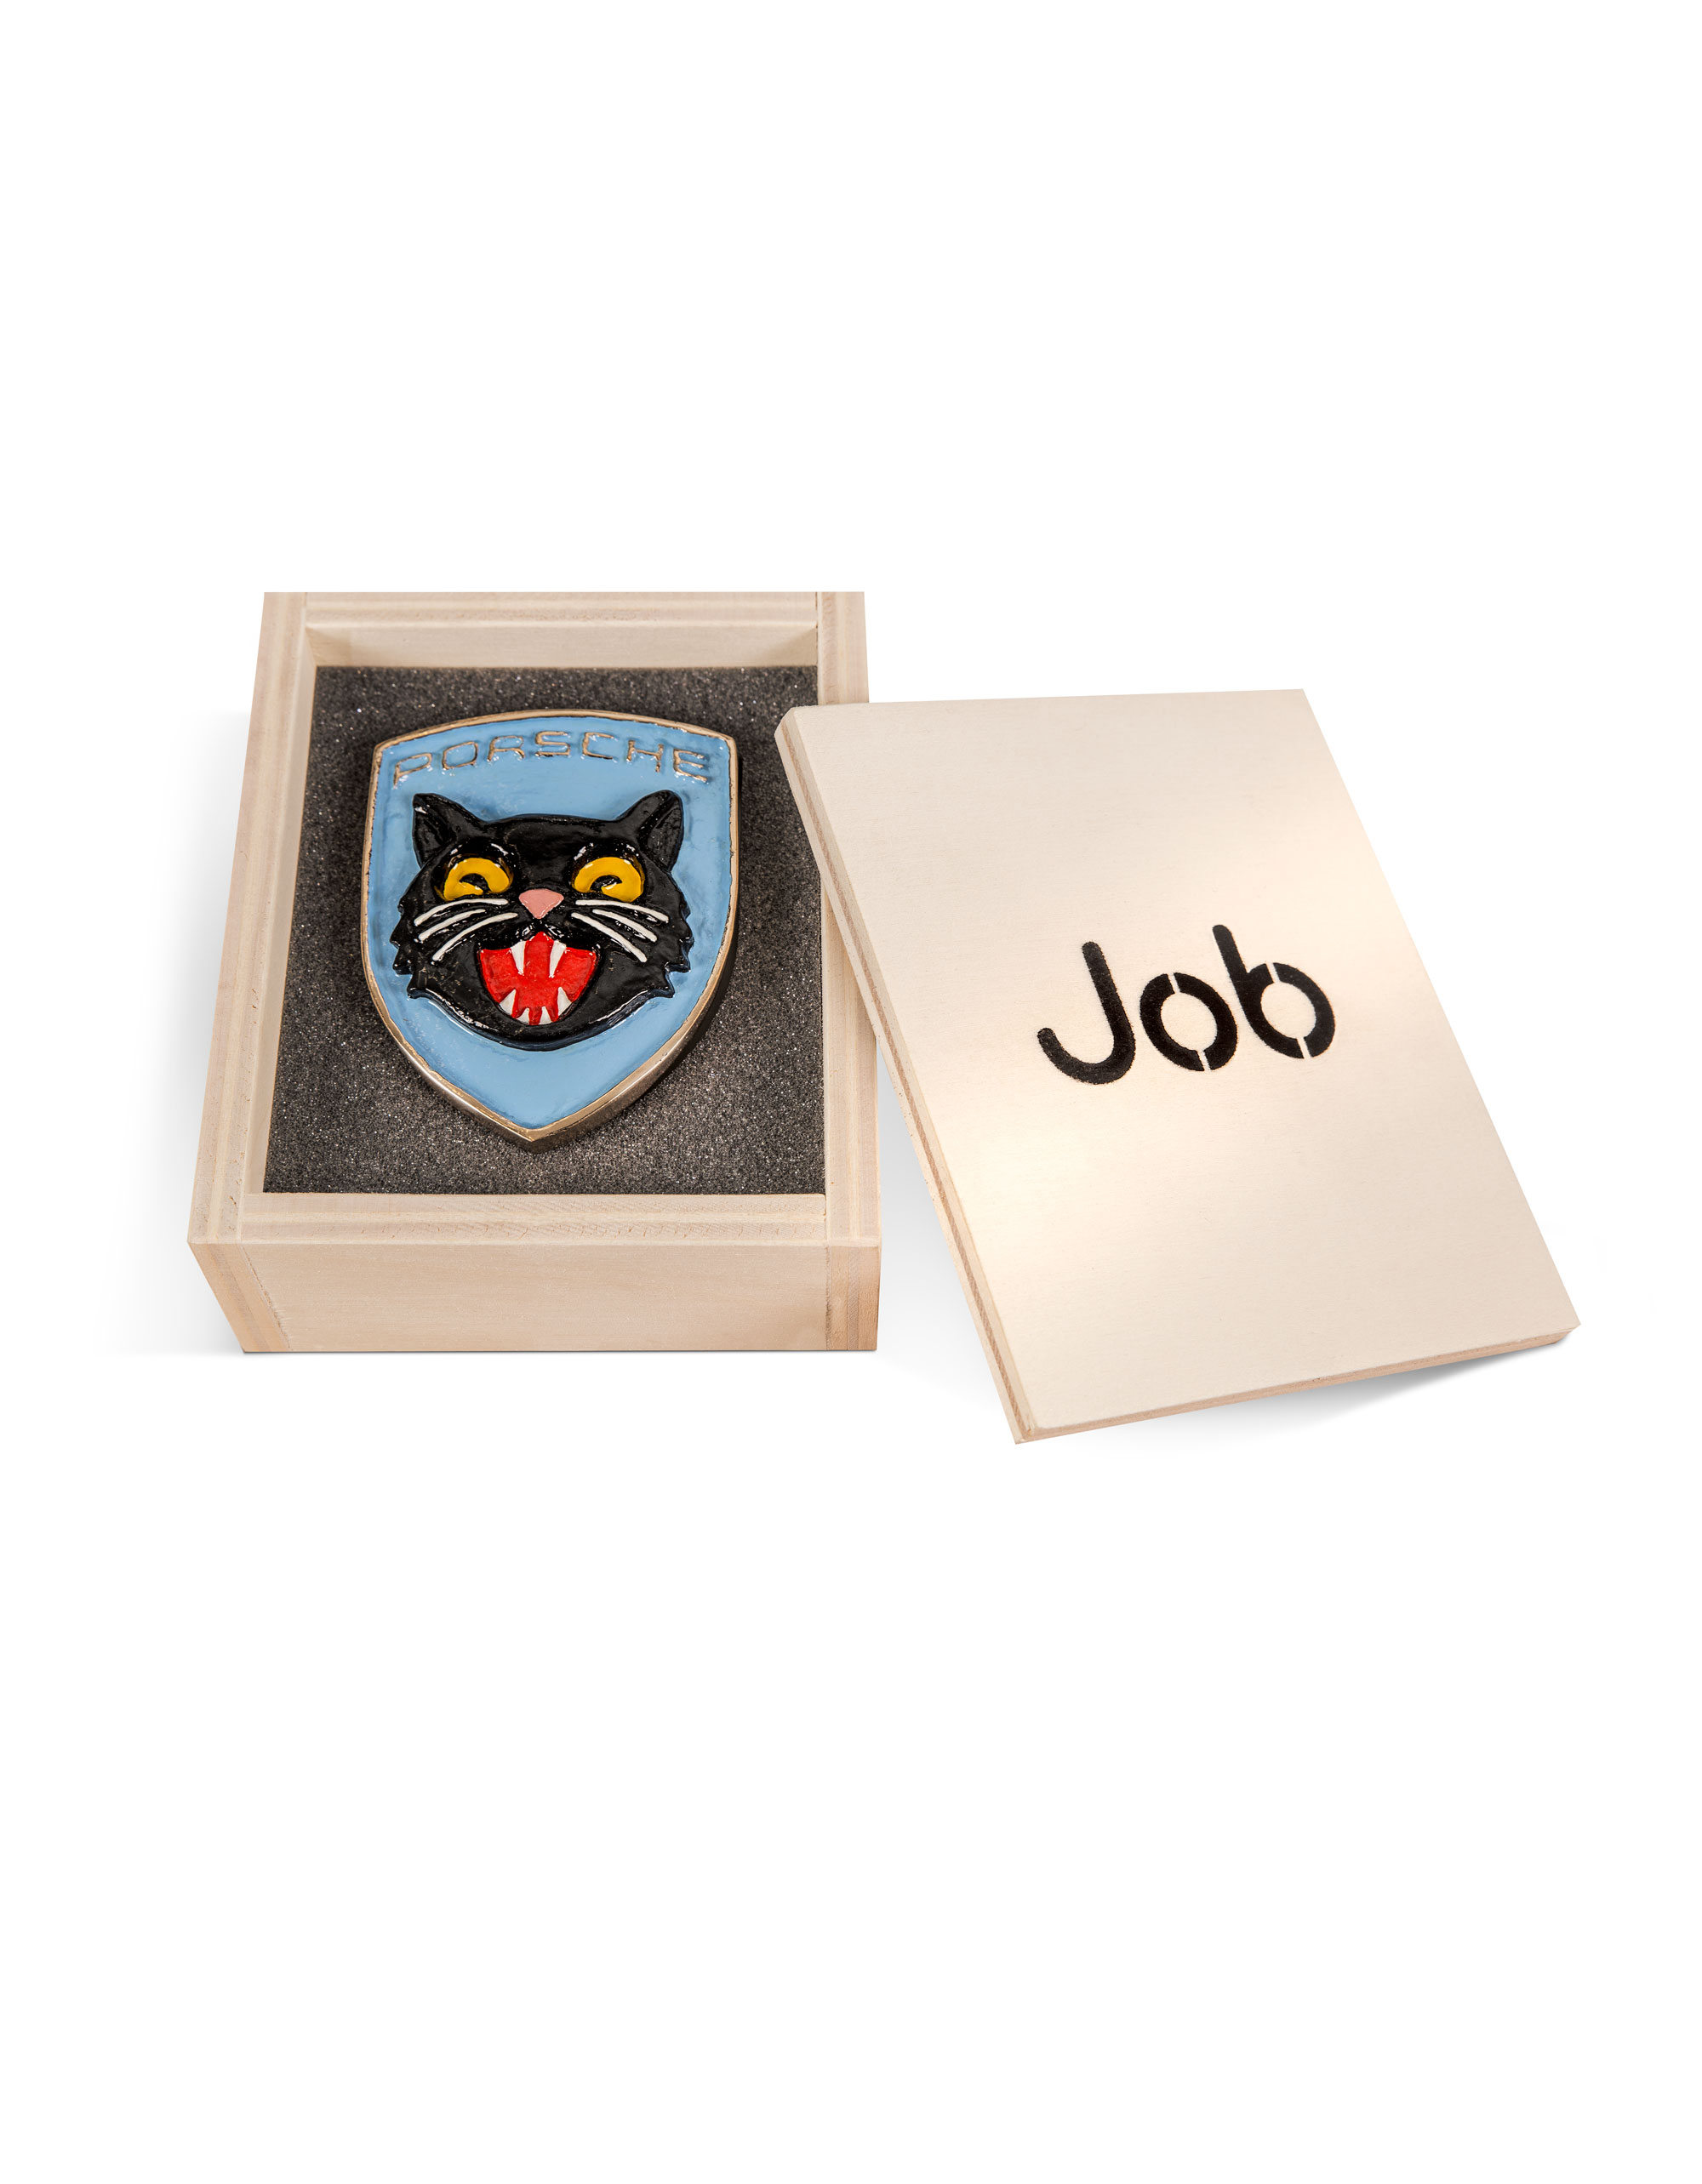 studio-job-Porsche-Cat-Logo-1-2019